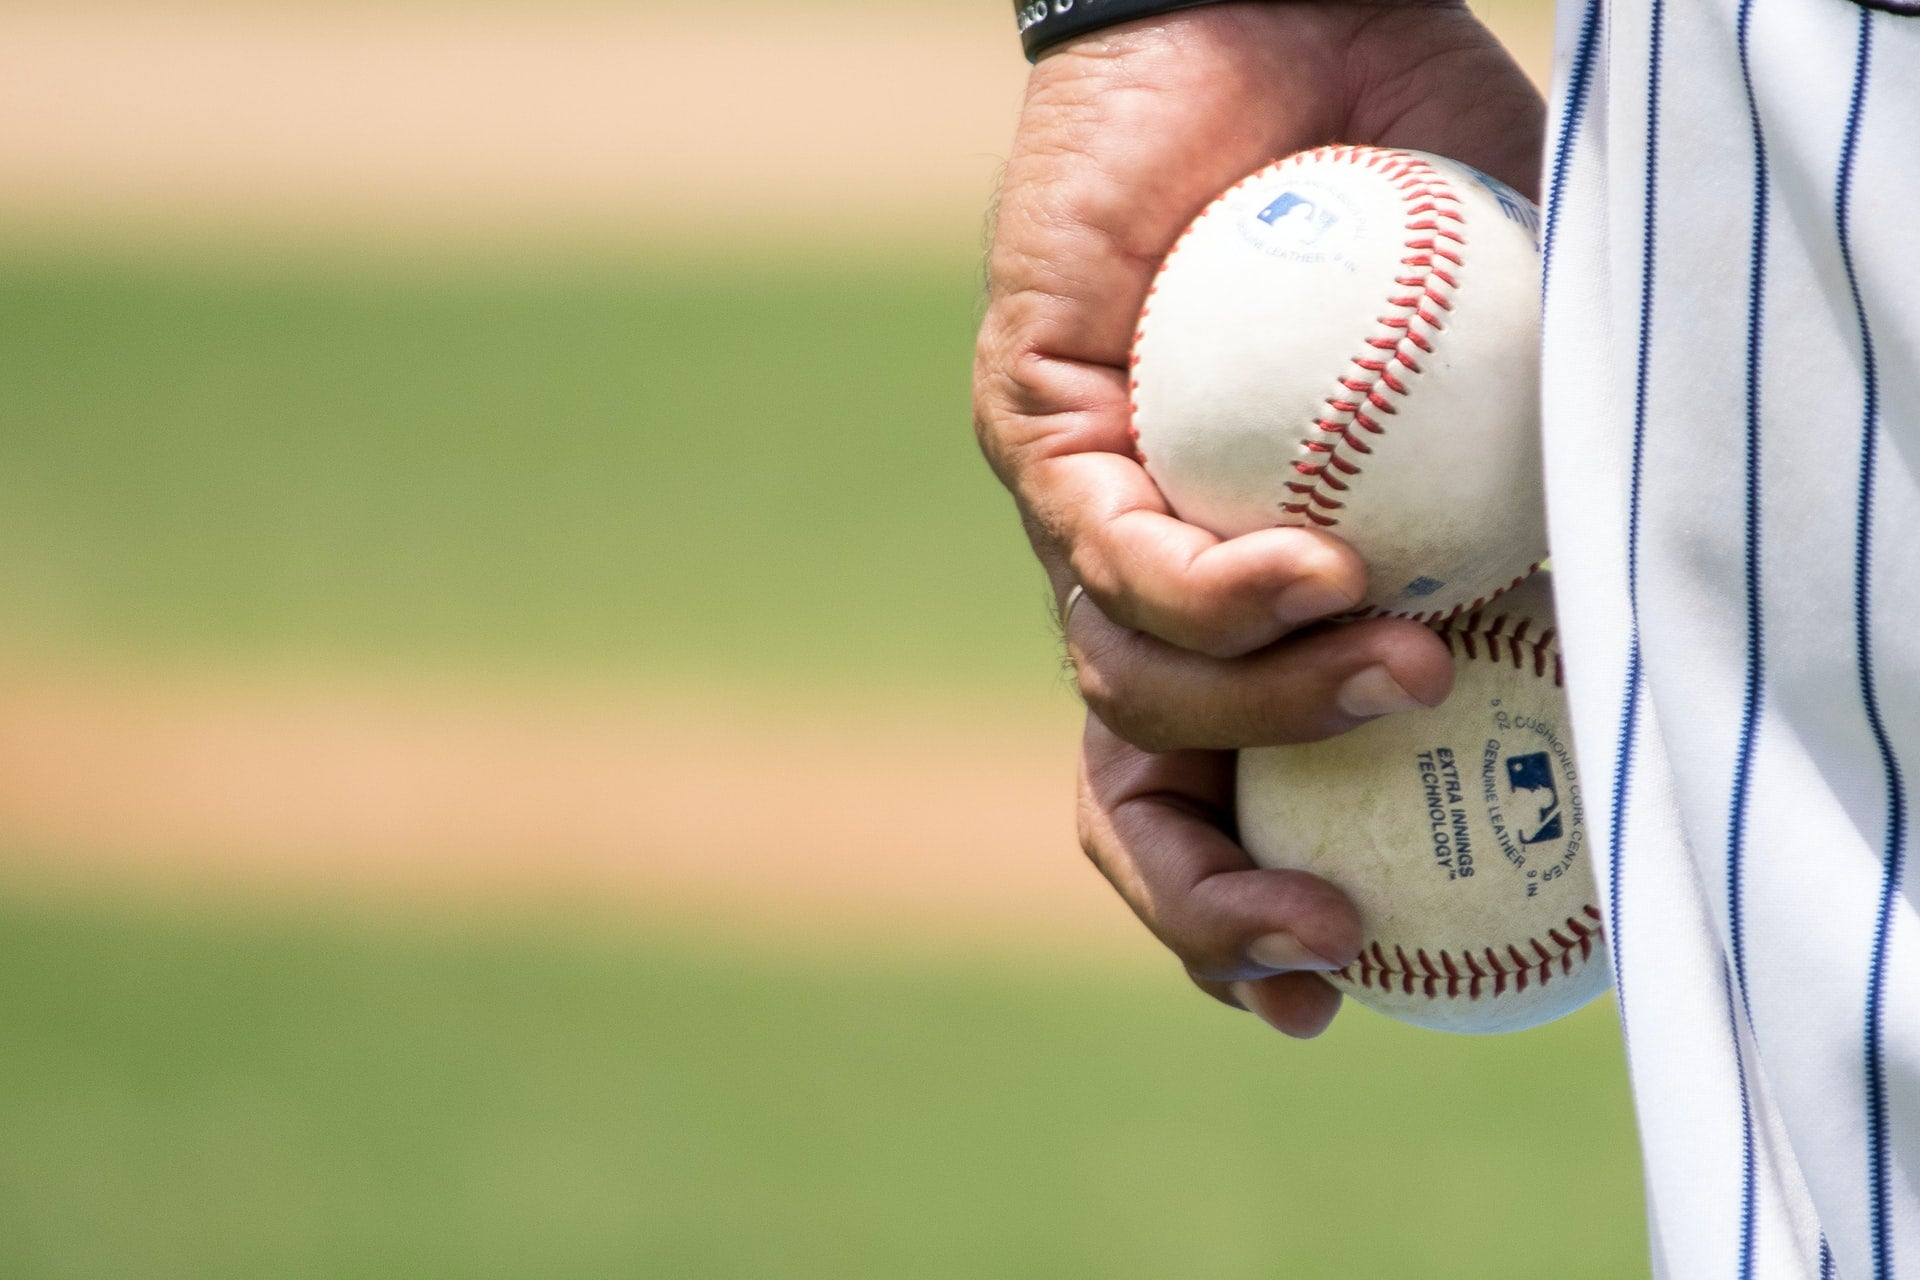 Player in pinstripes holding two baseballs